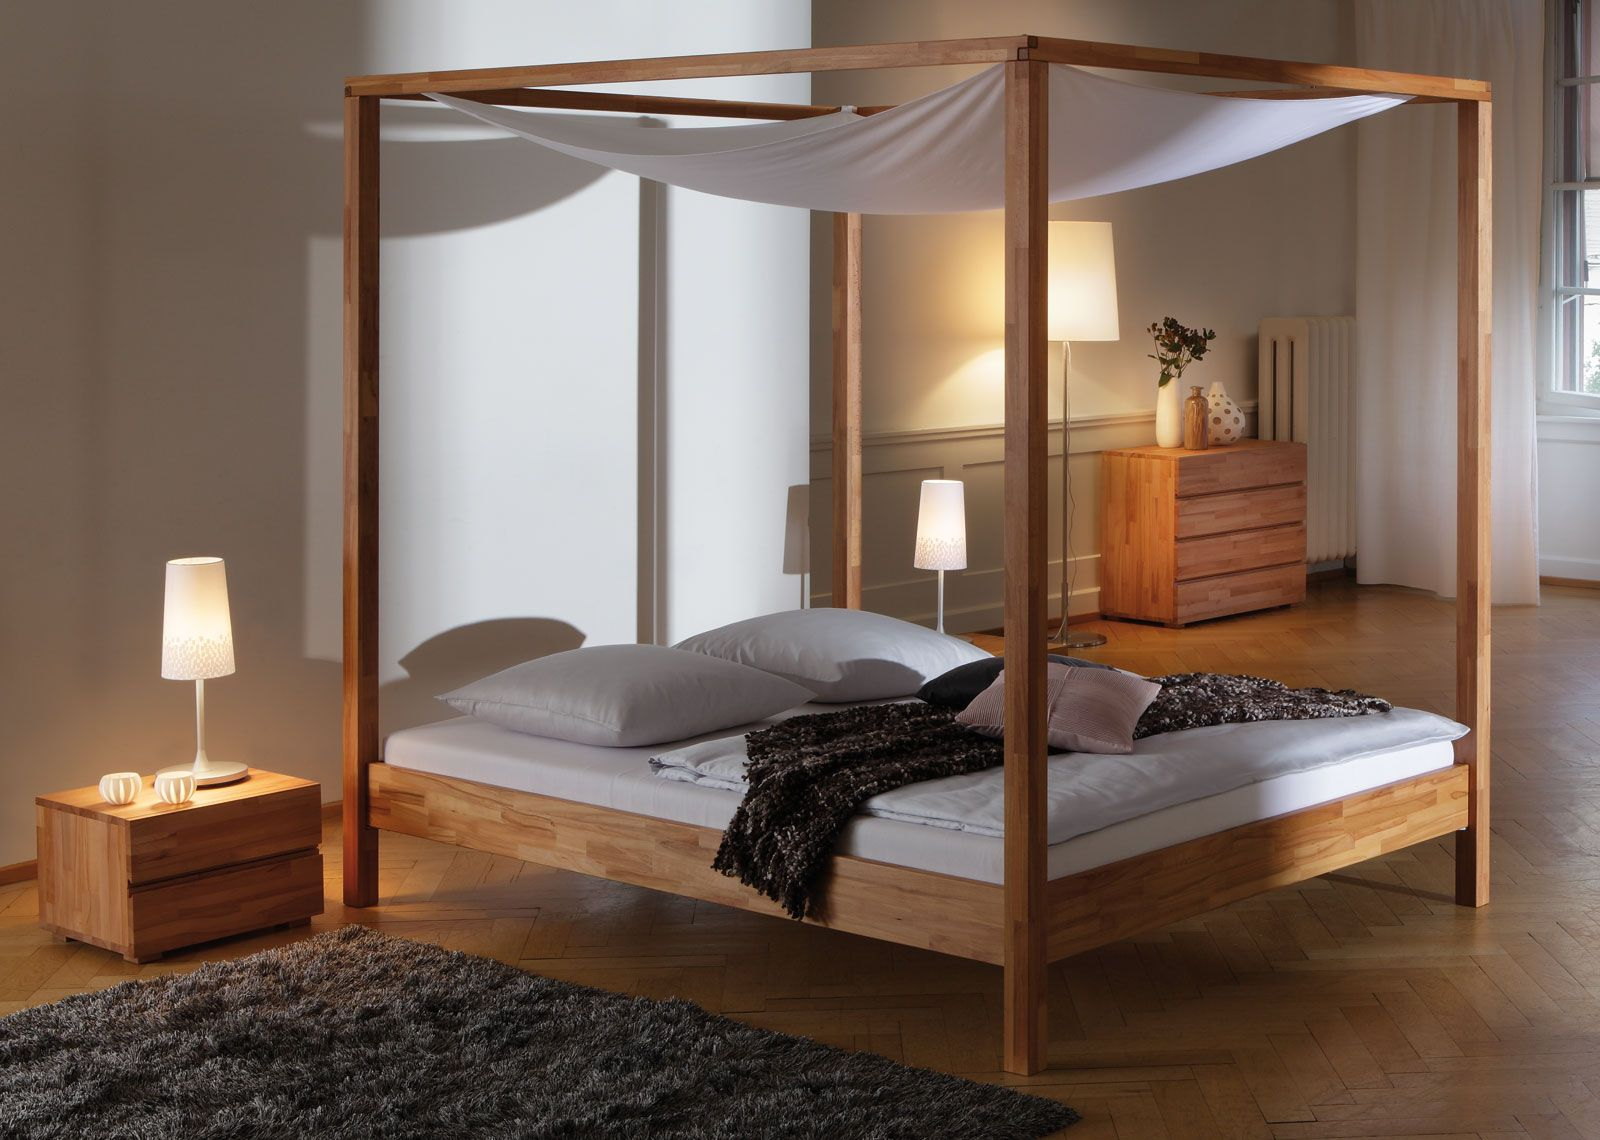 Schönes Bett Himmelbett Quotmerida Quot The Sunny Life Bed Teak Furniture